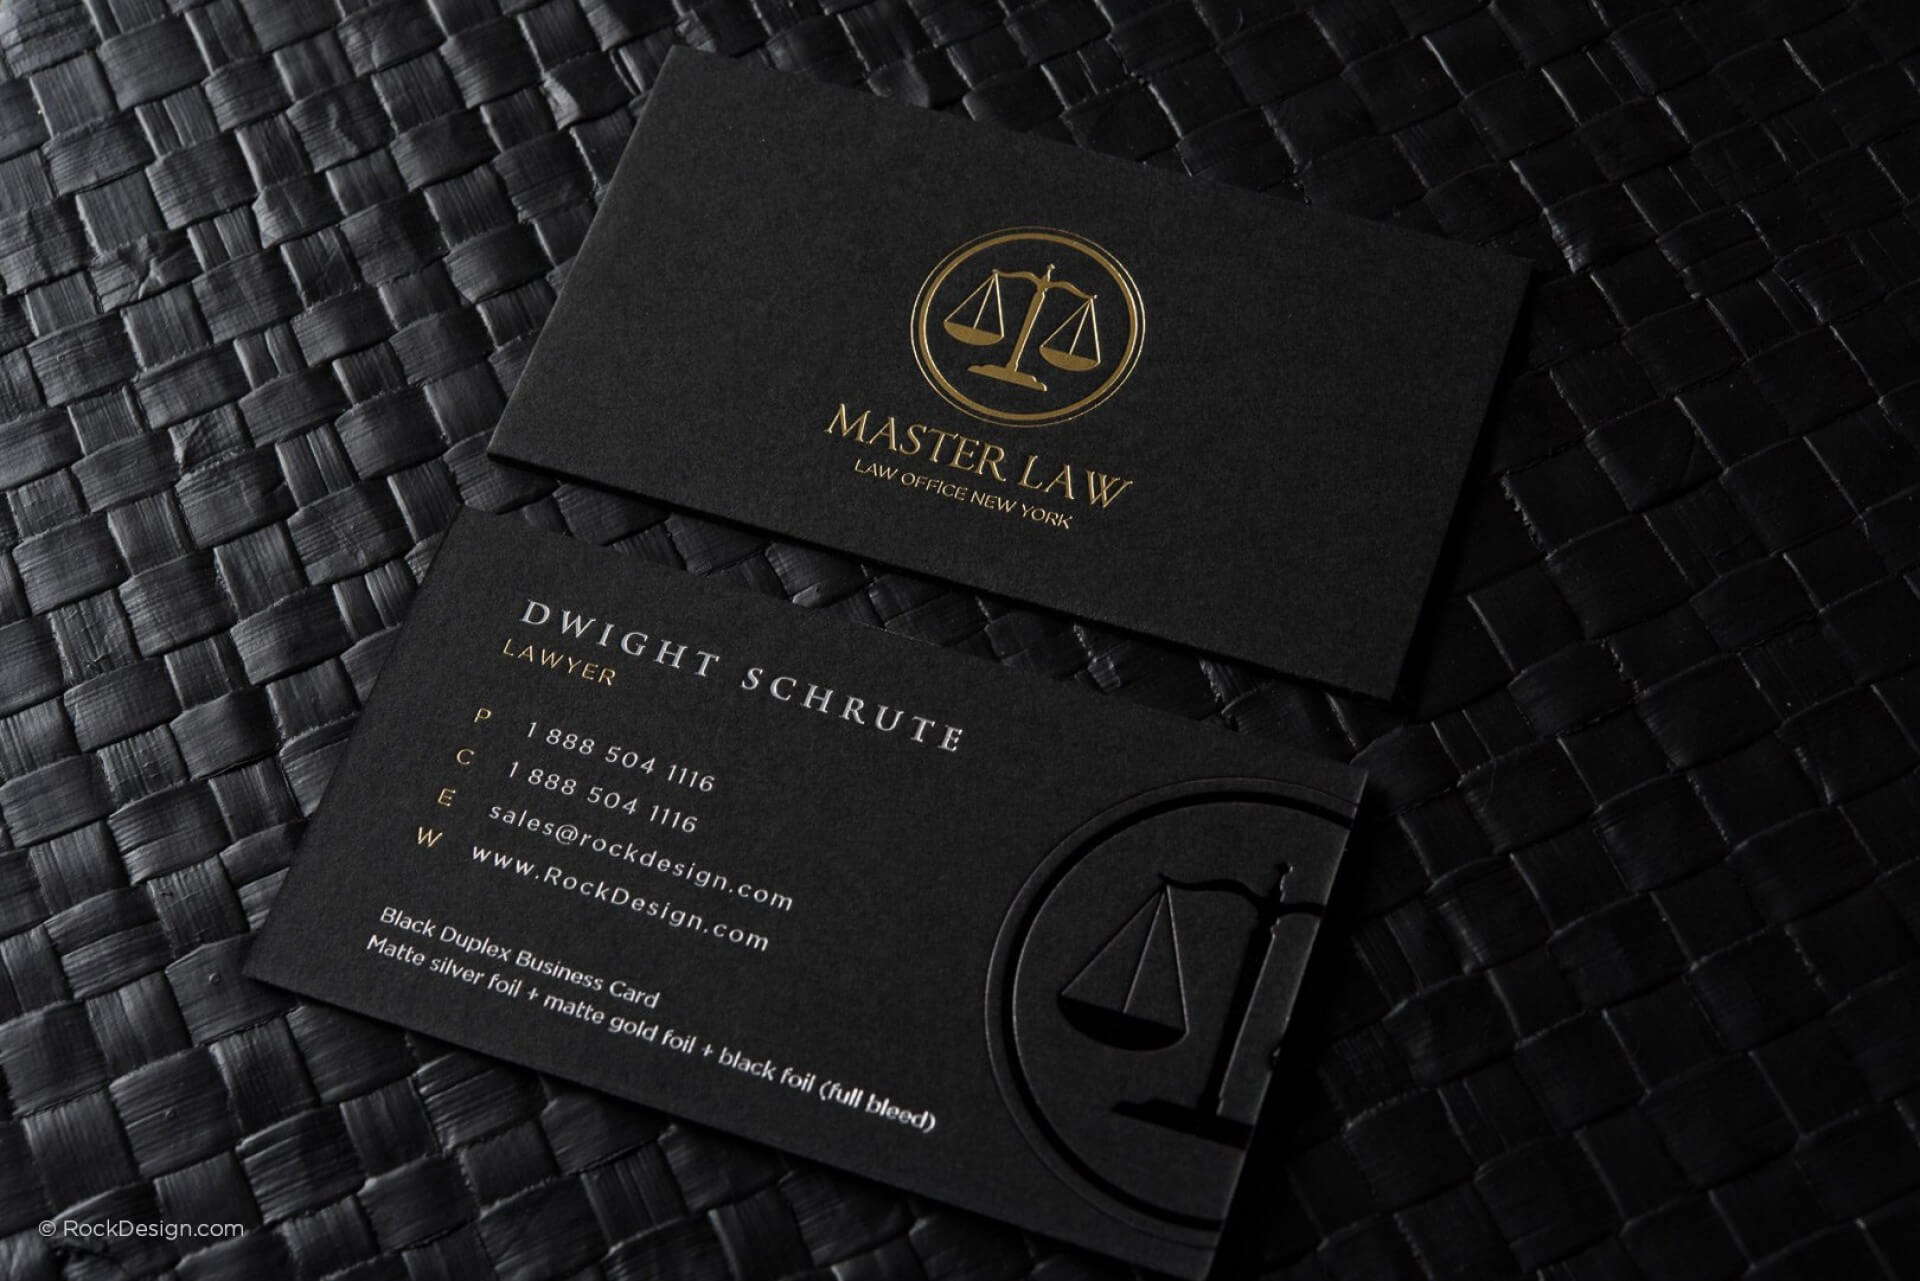 031 Microsoft Office Business Cards Templates Free Card With Legal Business Cards Templates Free